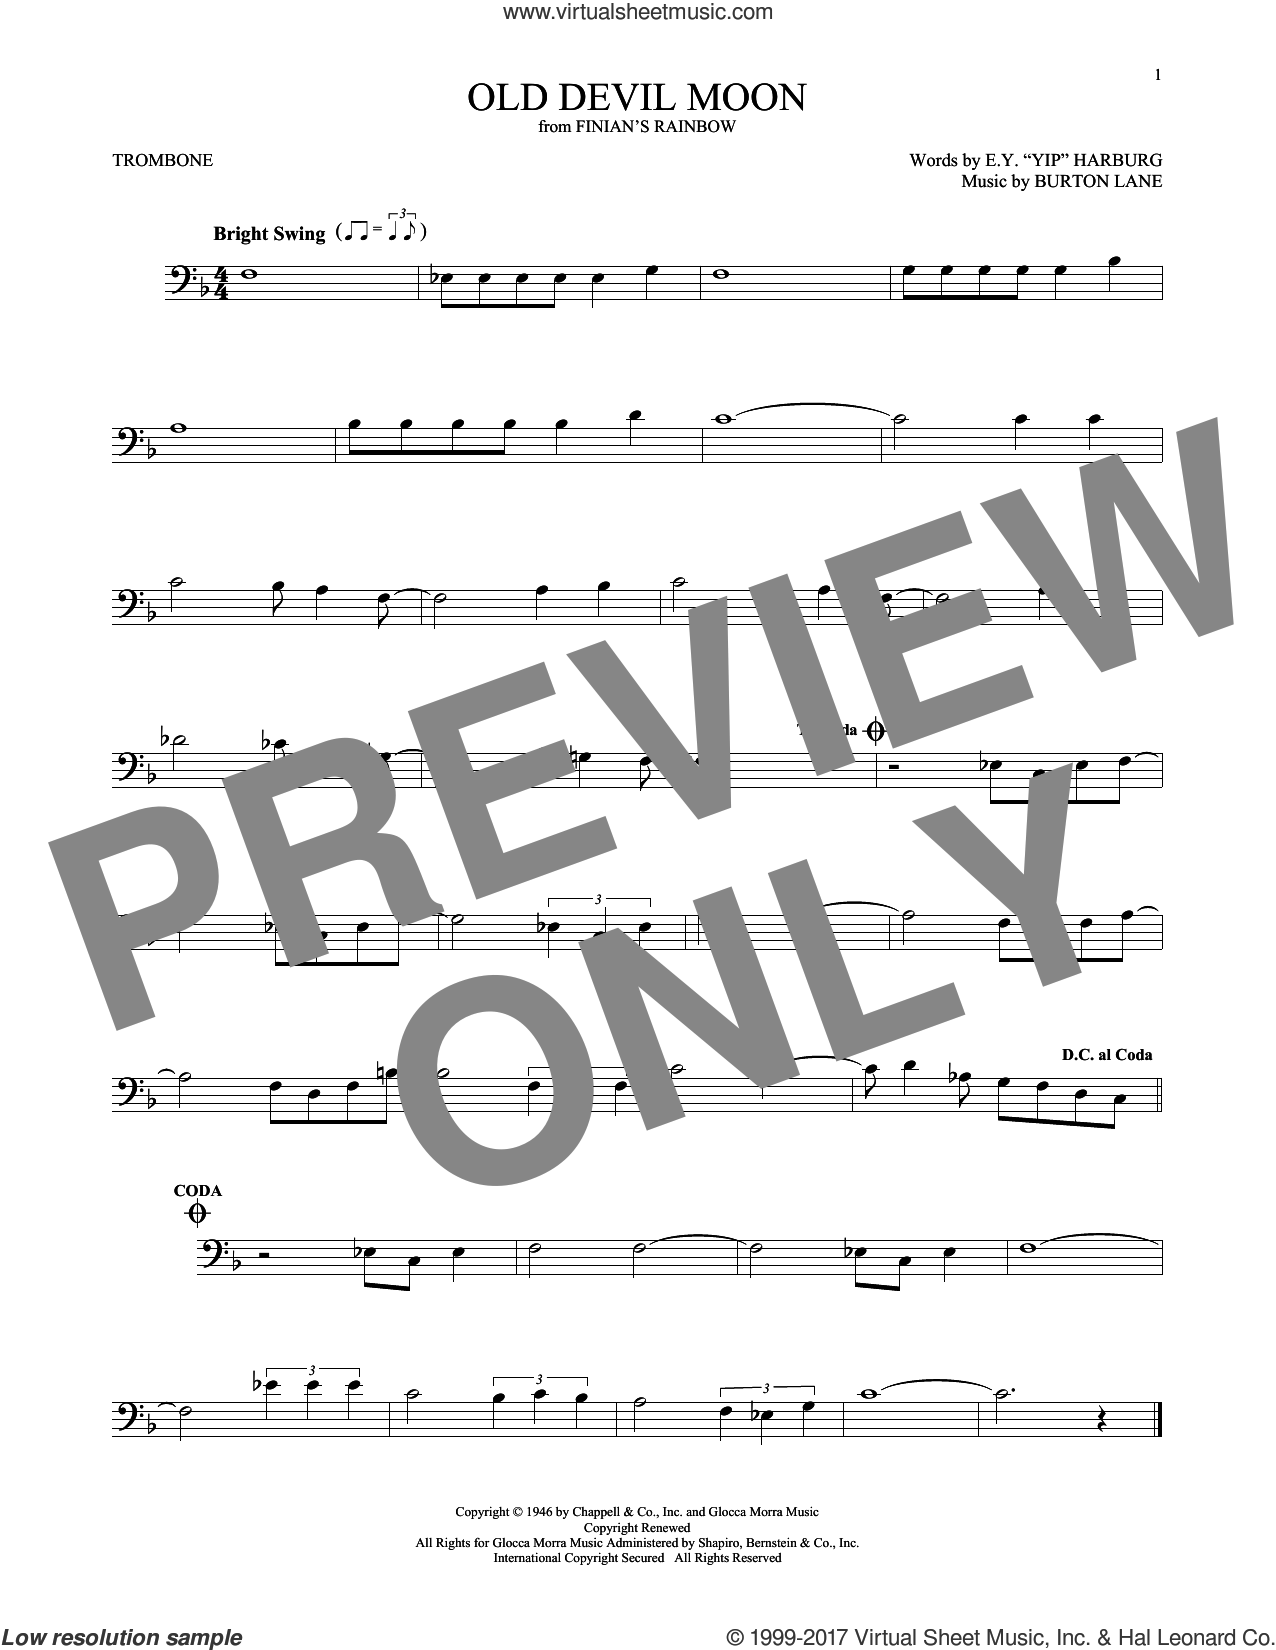 Old Devil Moon sheet music for trombone solo by E.Y. Harburg and Burton Lane, intermediate skill level